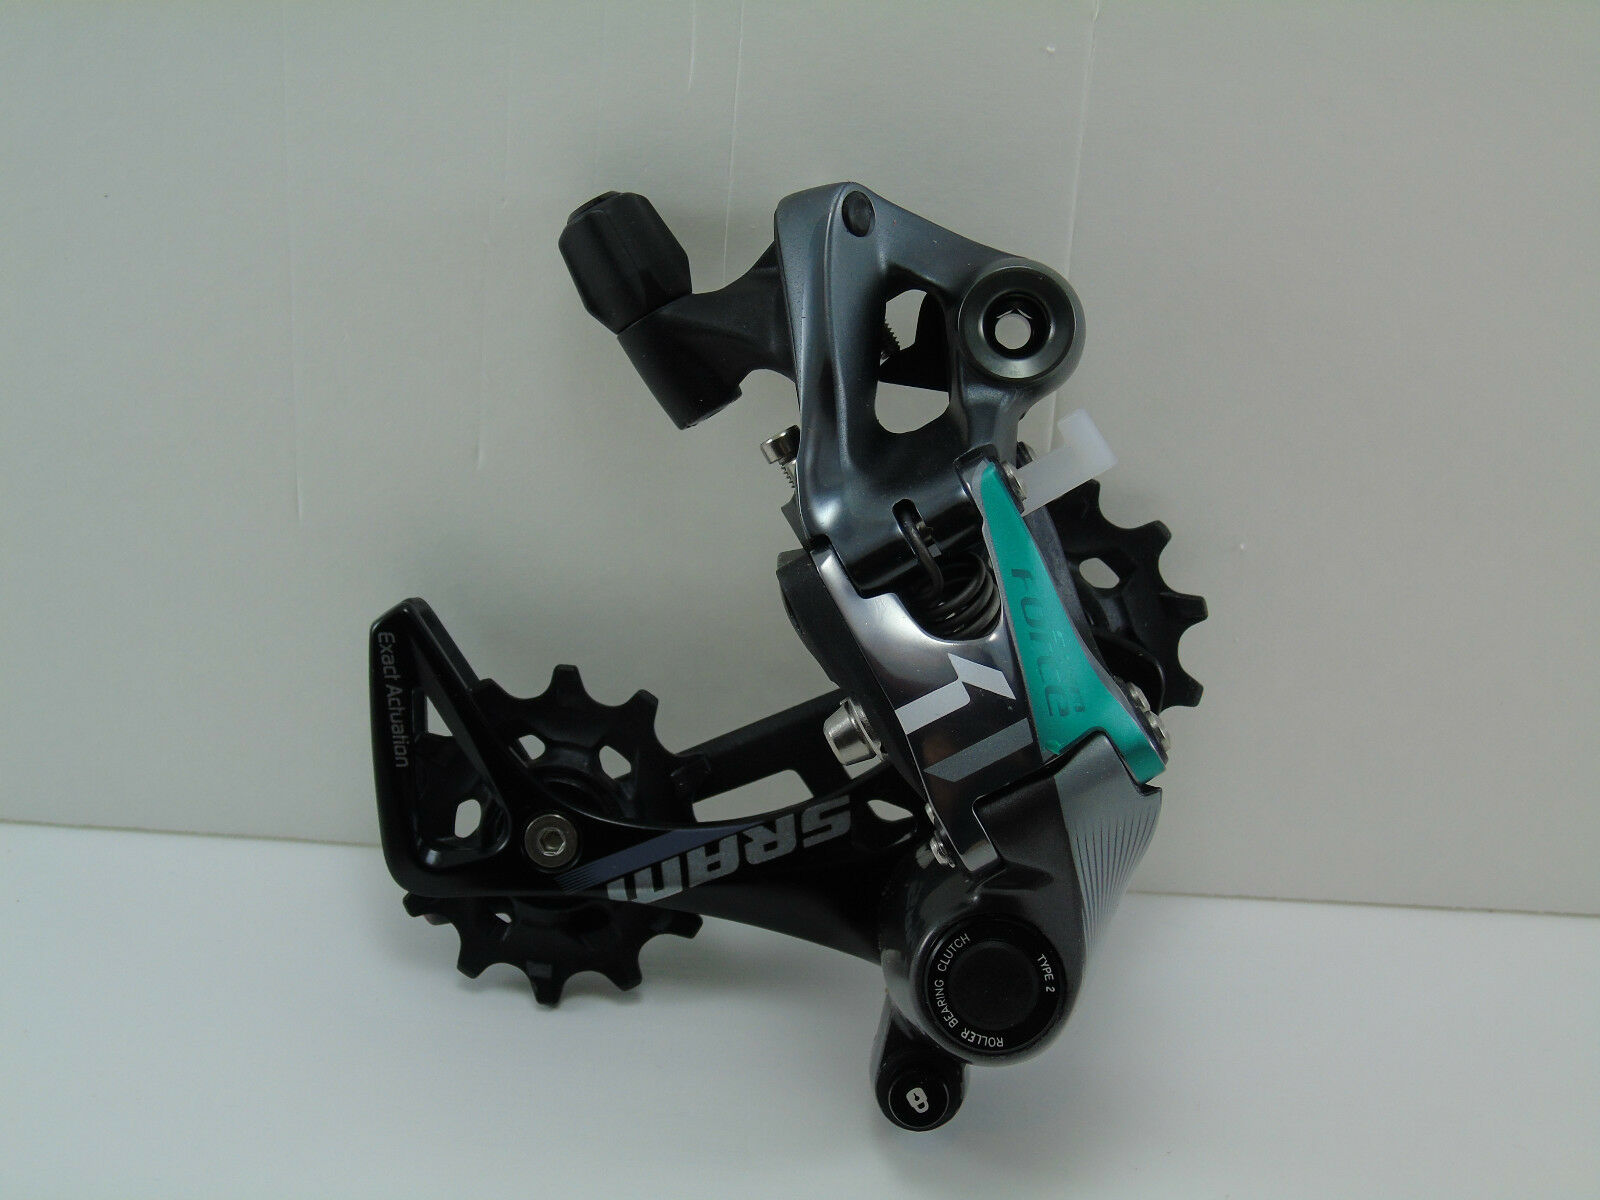 SRAM  FORCE CX1 REAR DERAILLEUR, 11 SPEED, MEDIUM CAGE, NEW IN BOX